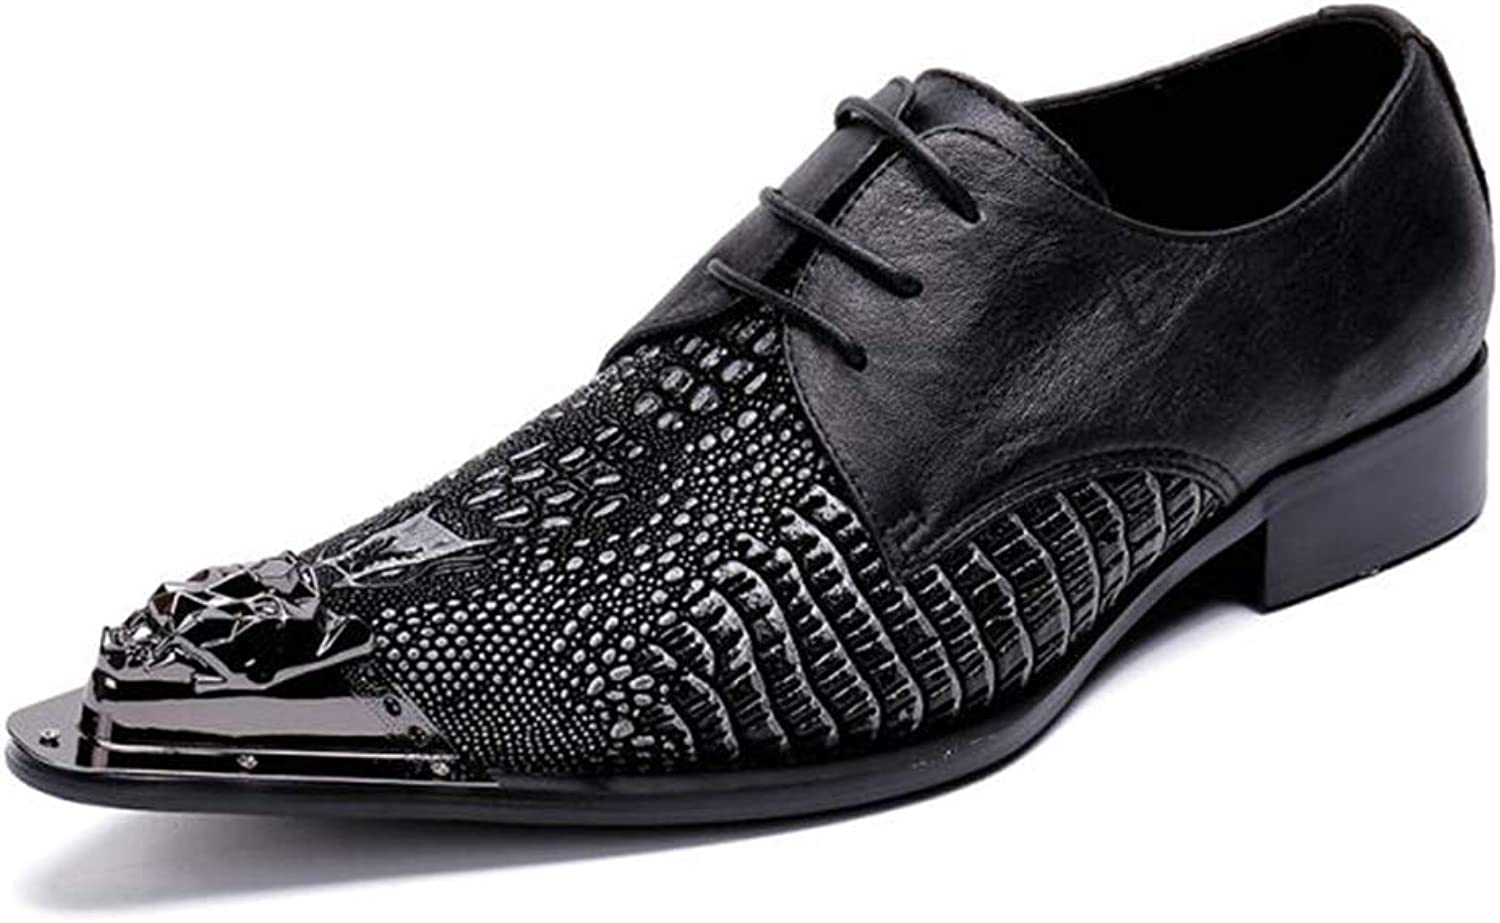 Mens shoes Leather Smart Formal shoes Fashion Business Dress shoes Metallic Toe Driving shoes for Wedding Casual Party & Evening Black YAN (color   Black, Size   43)